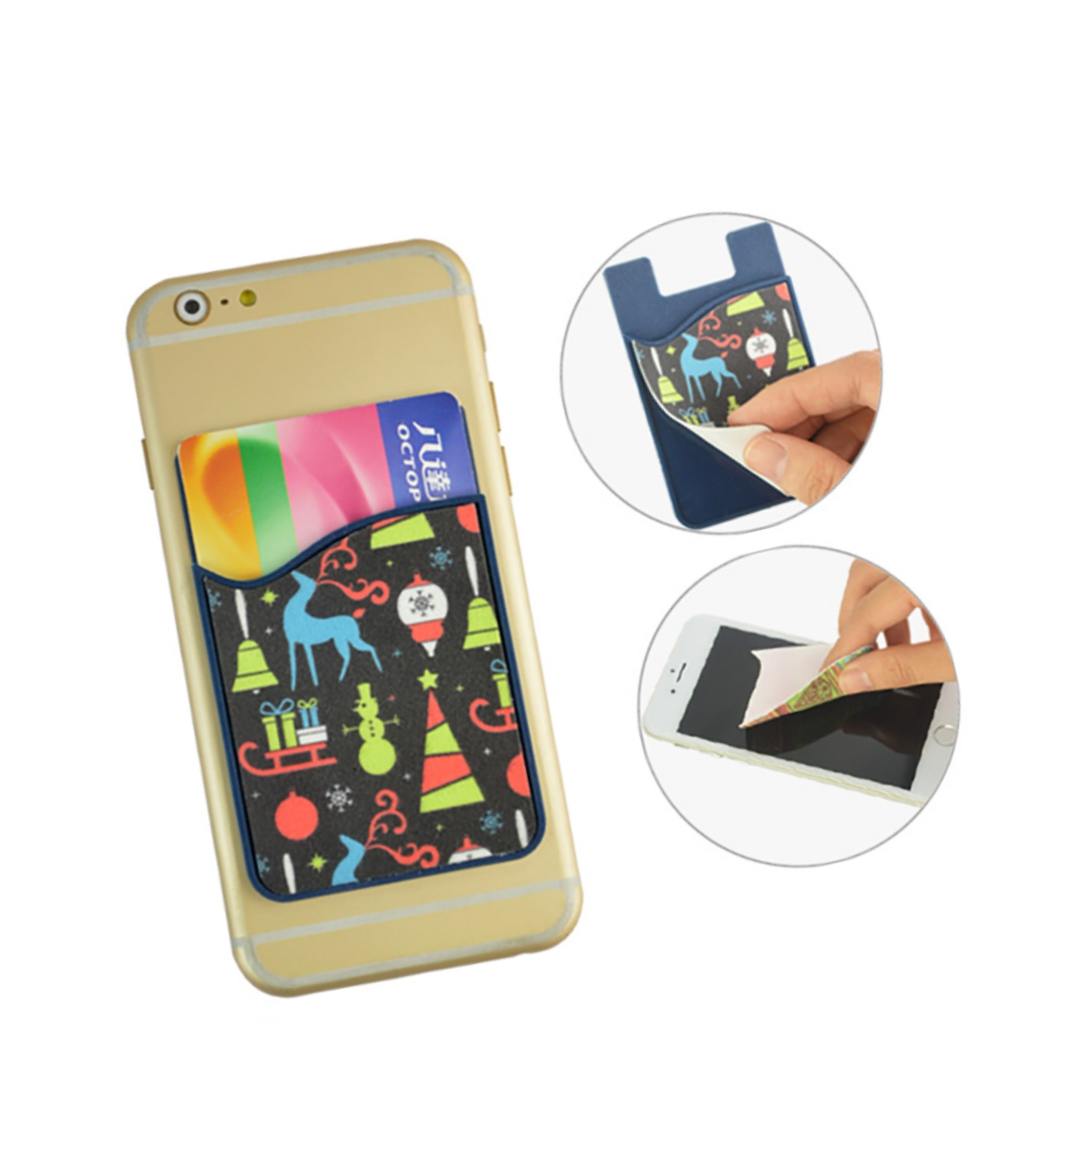 Card holder with screen cleaner microfiber stickers